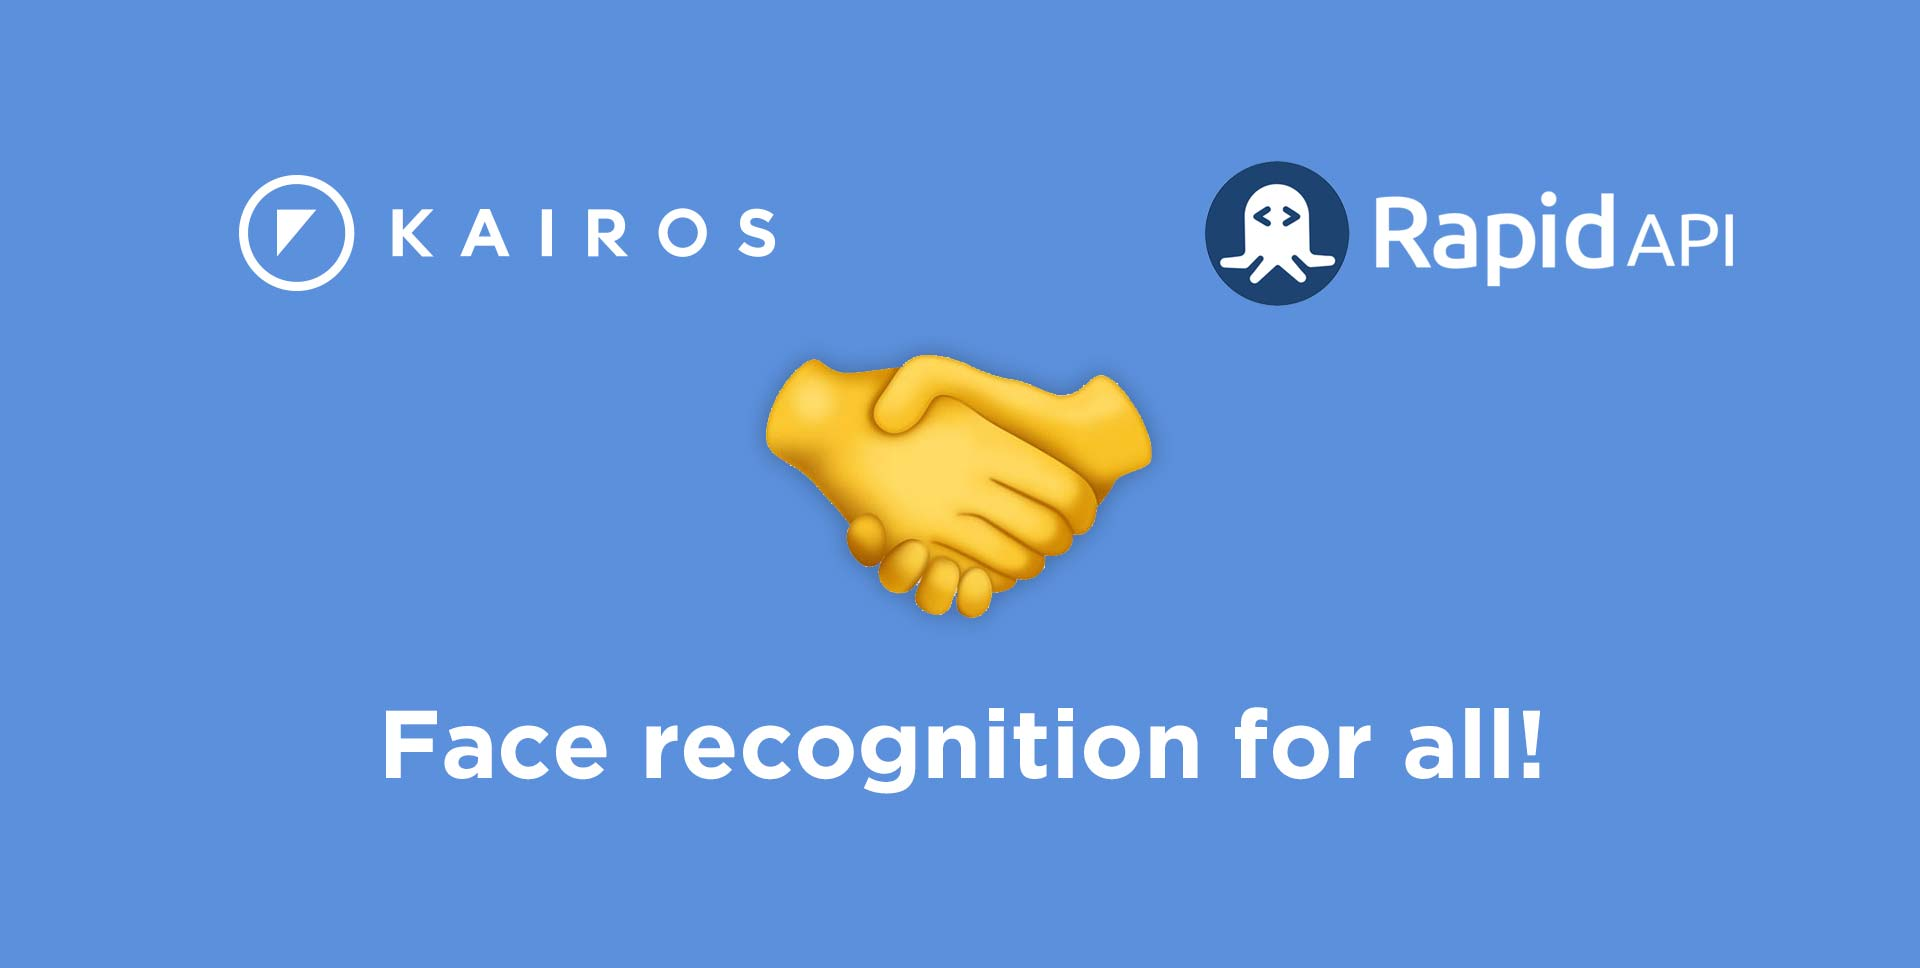 Kairos Partners with RapidAPI to provide facial recognition to developers